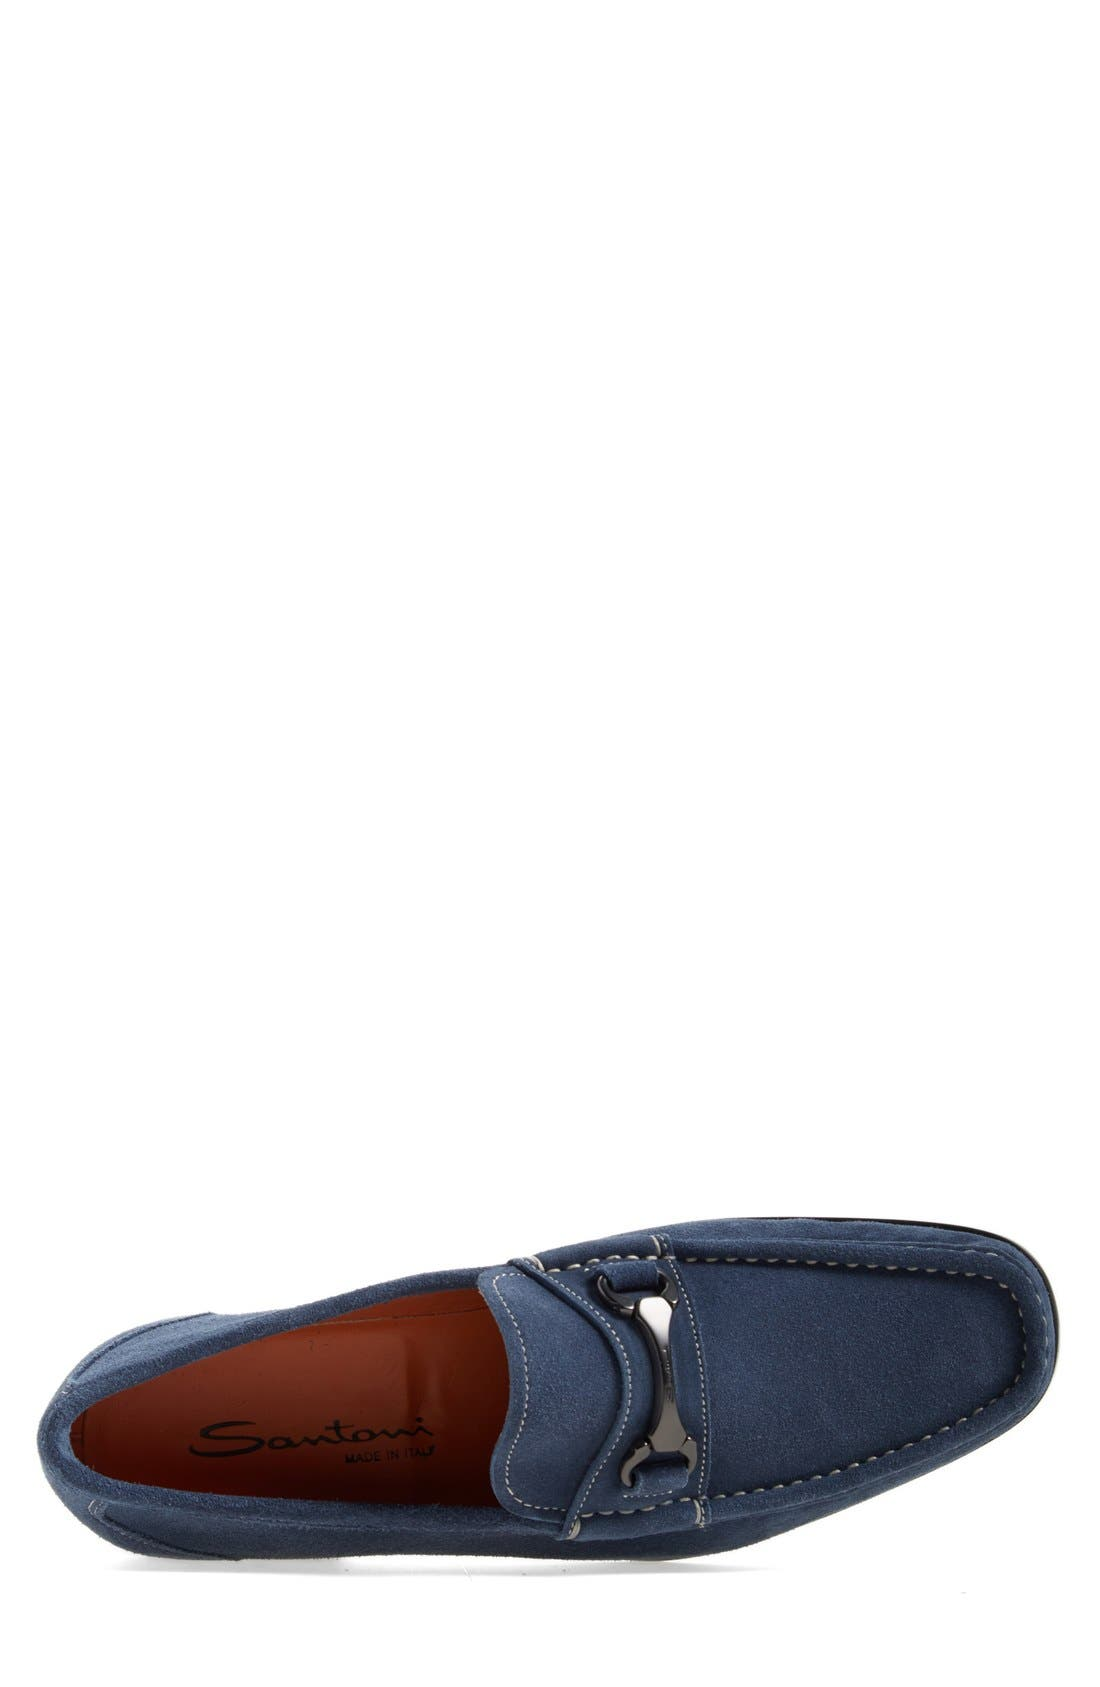 Alternate Image 3  - Santoni 'Tahoe' Bit Loafer